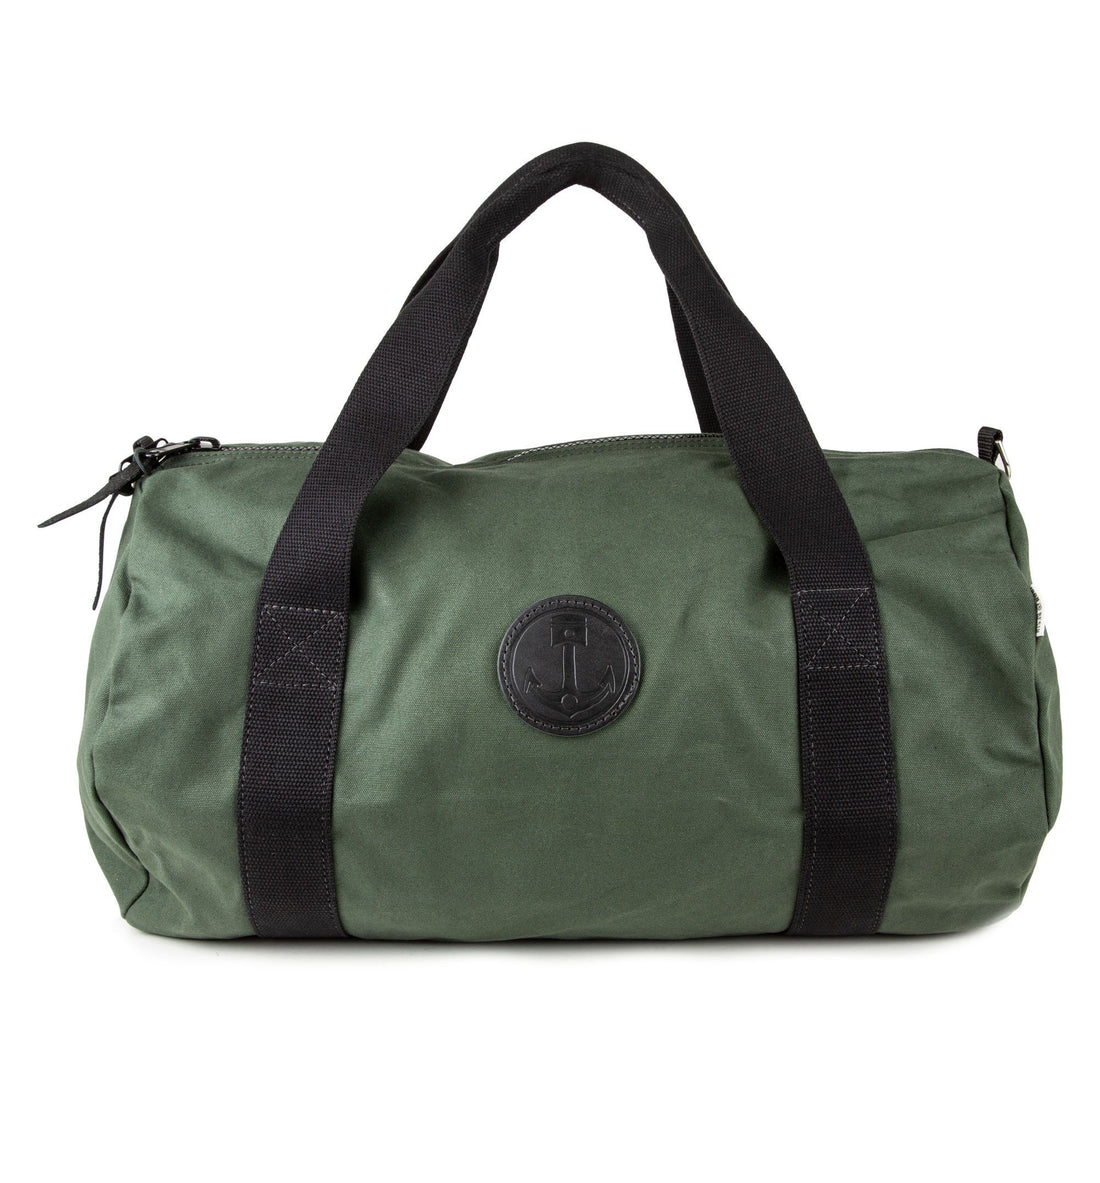 Duluth Pack InR x Duluth Round Duffel - Bags/Luggage - Iron and Resin